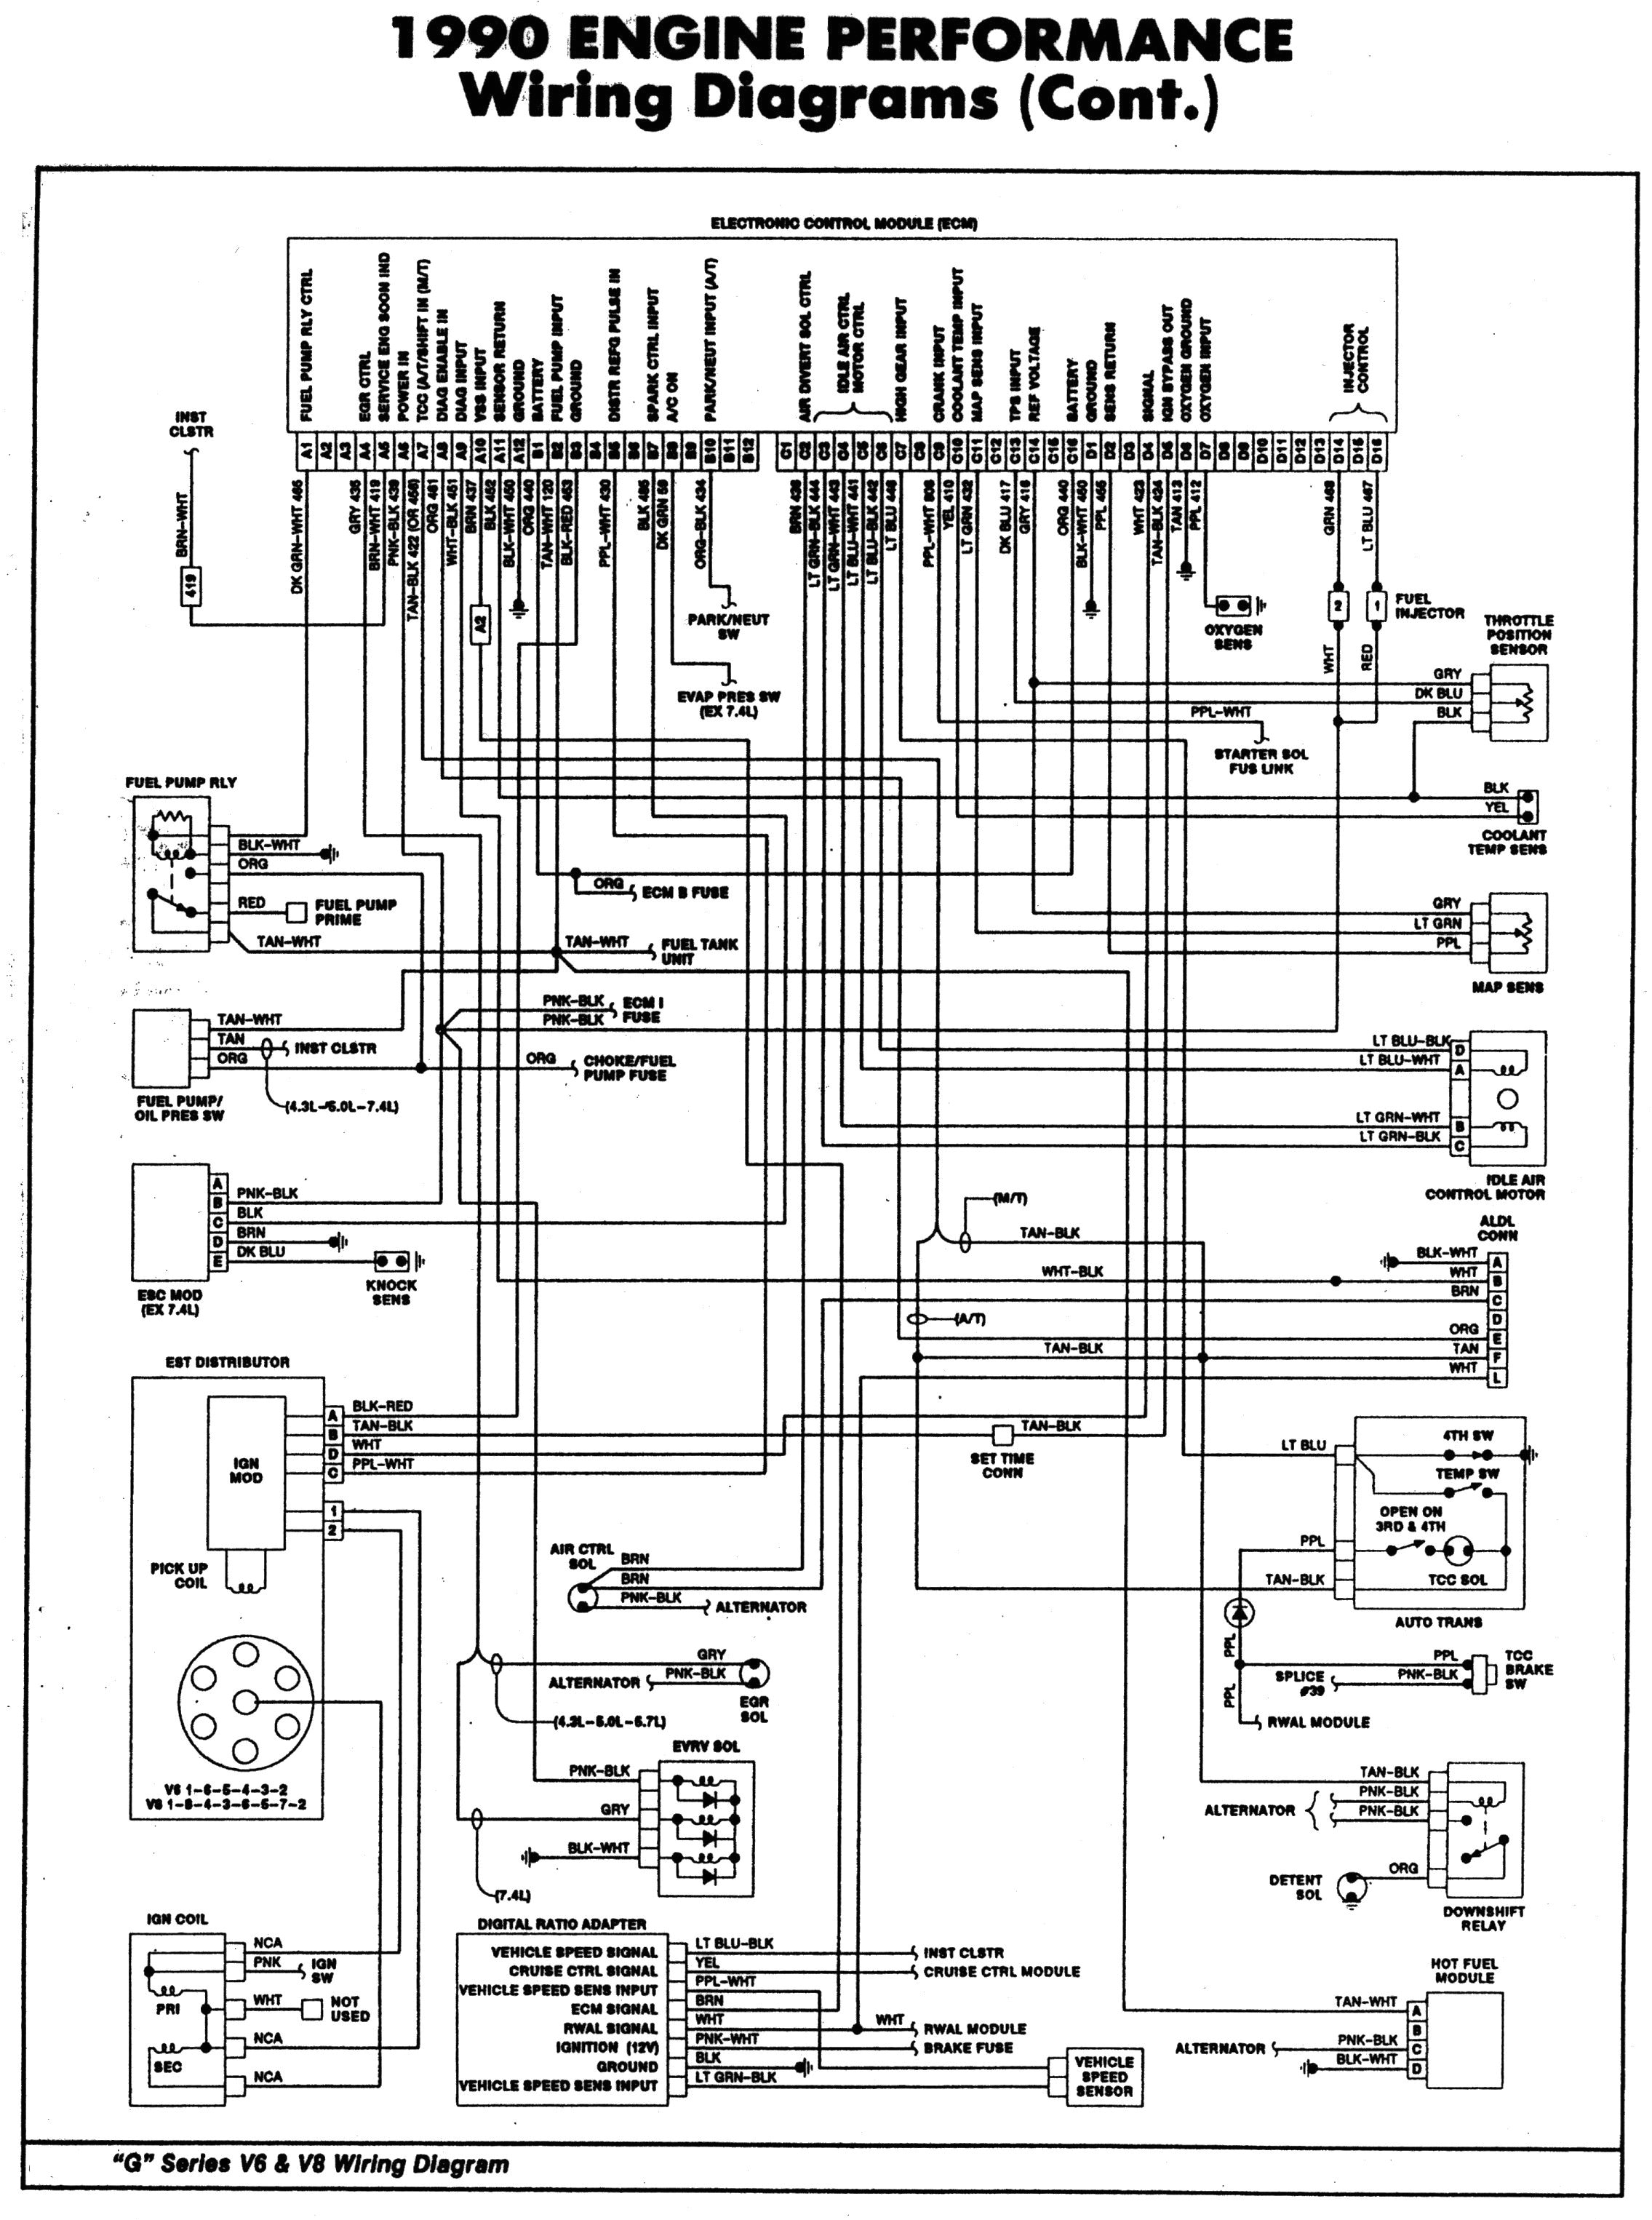 1994 chevy engine diagram wiring diagram user 1994 chevy silverado engine diagram 1994 chevy truck engine diagram